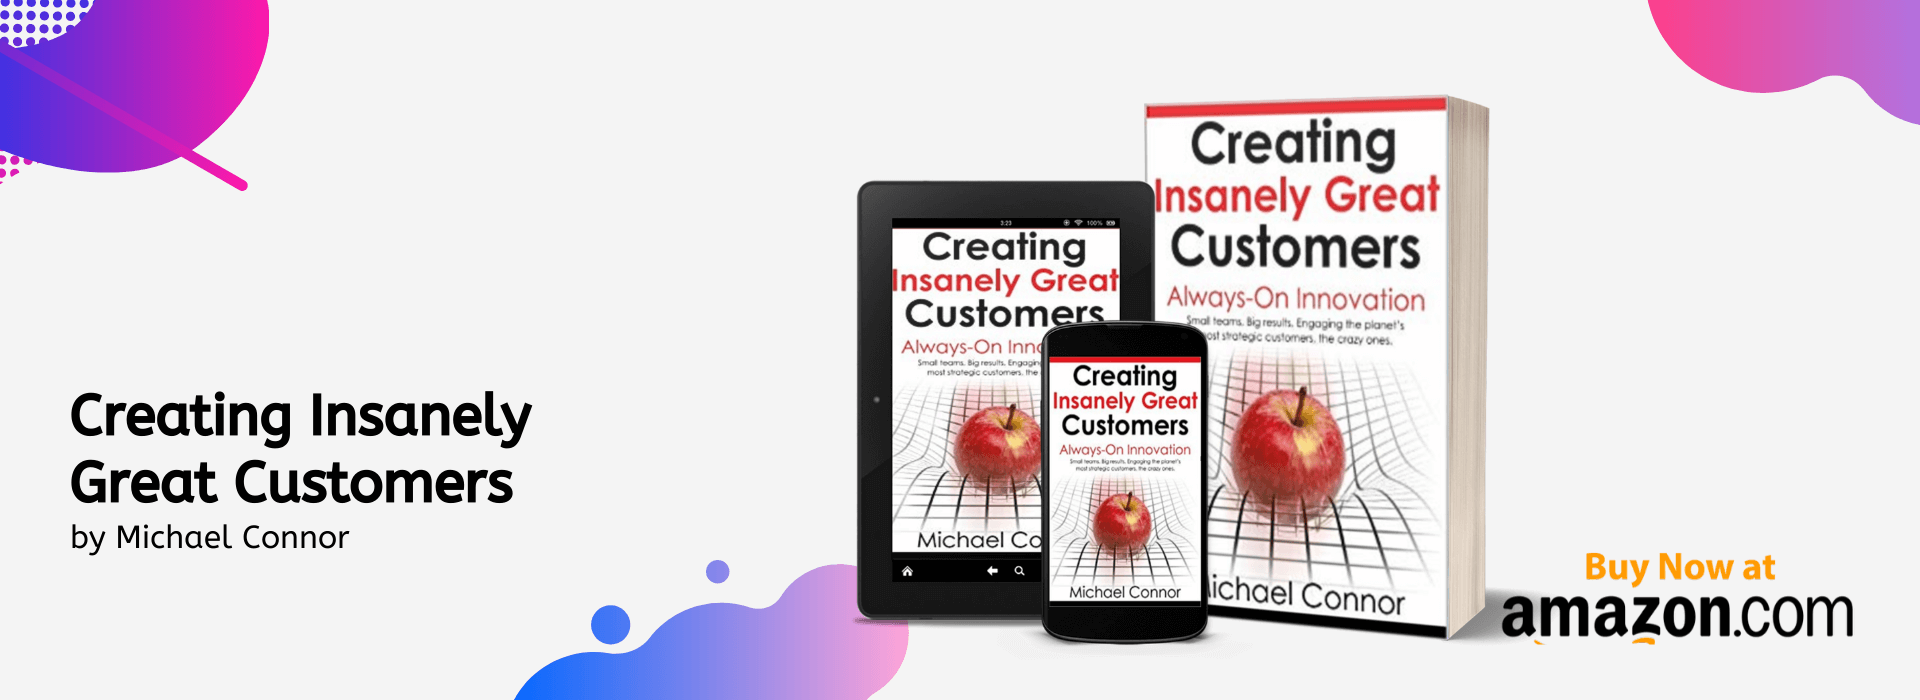 Creating Insanely Great Customers Always-On Innovation - Small teams. Big results. Engaging the planet's most strategic customers, the crazy ones.